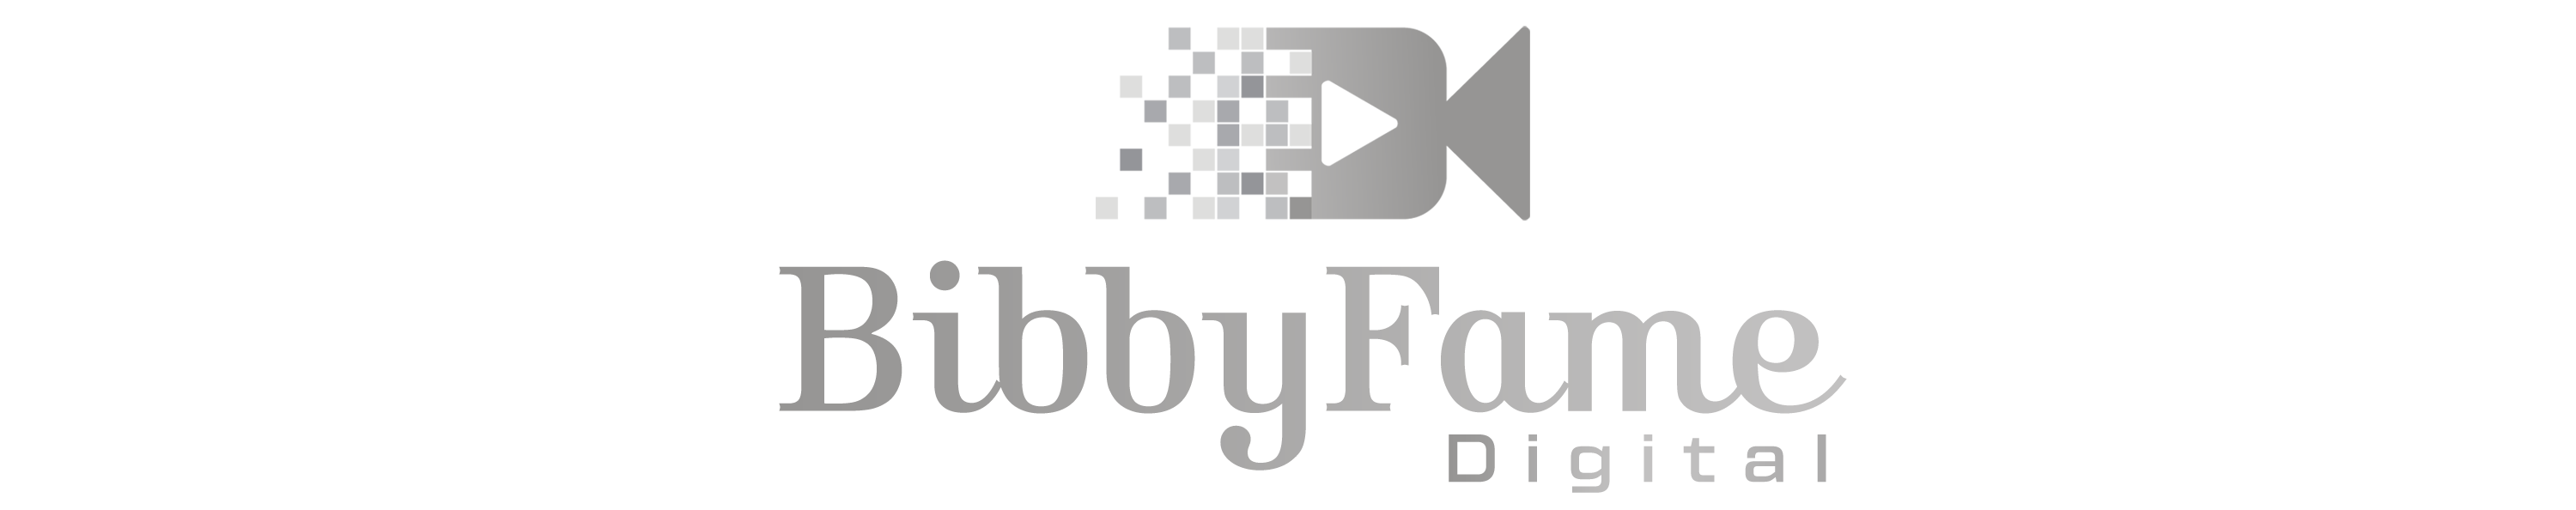 BibbyFame Digital, LLC – Visual Storytelling & Content Strategy